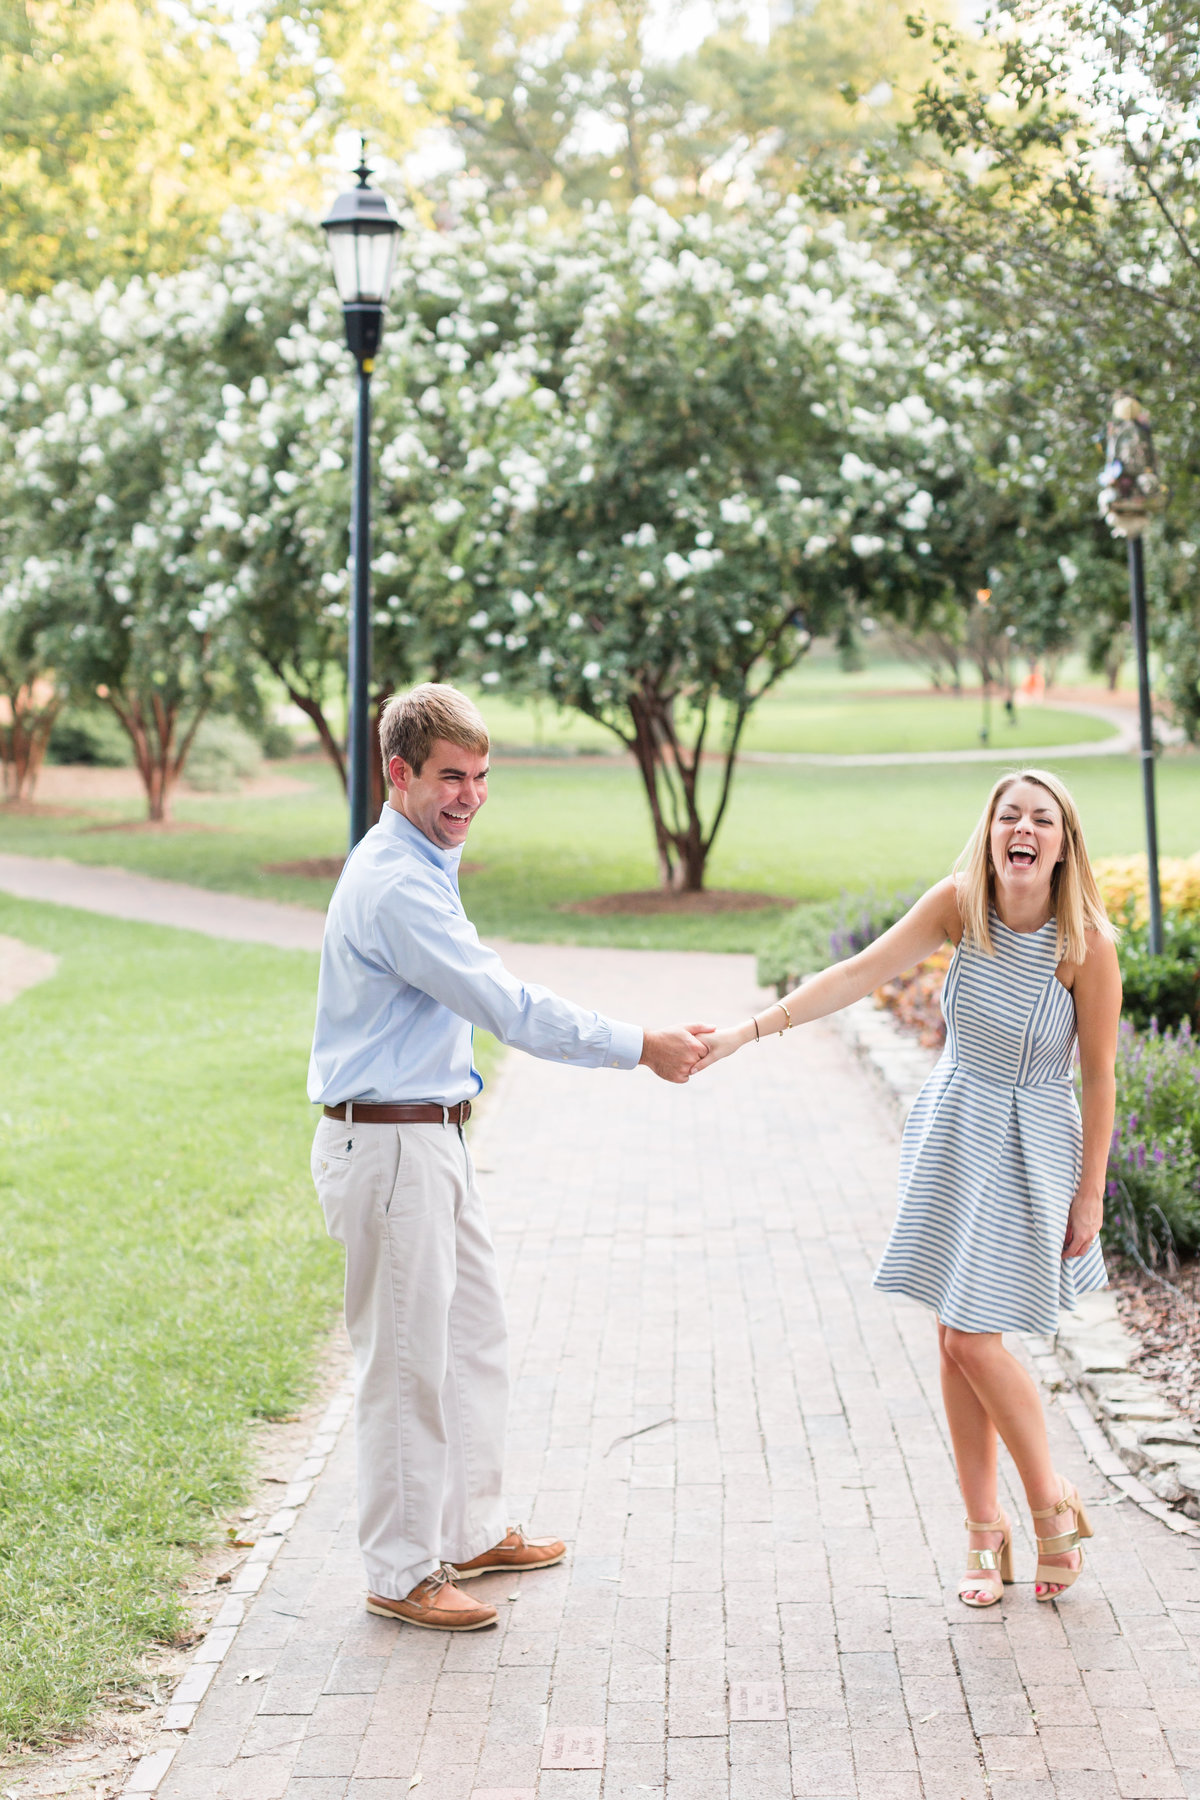 David and Laura Engaged-Samantha Laffoon Photography-59